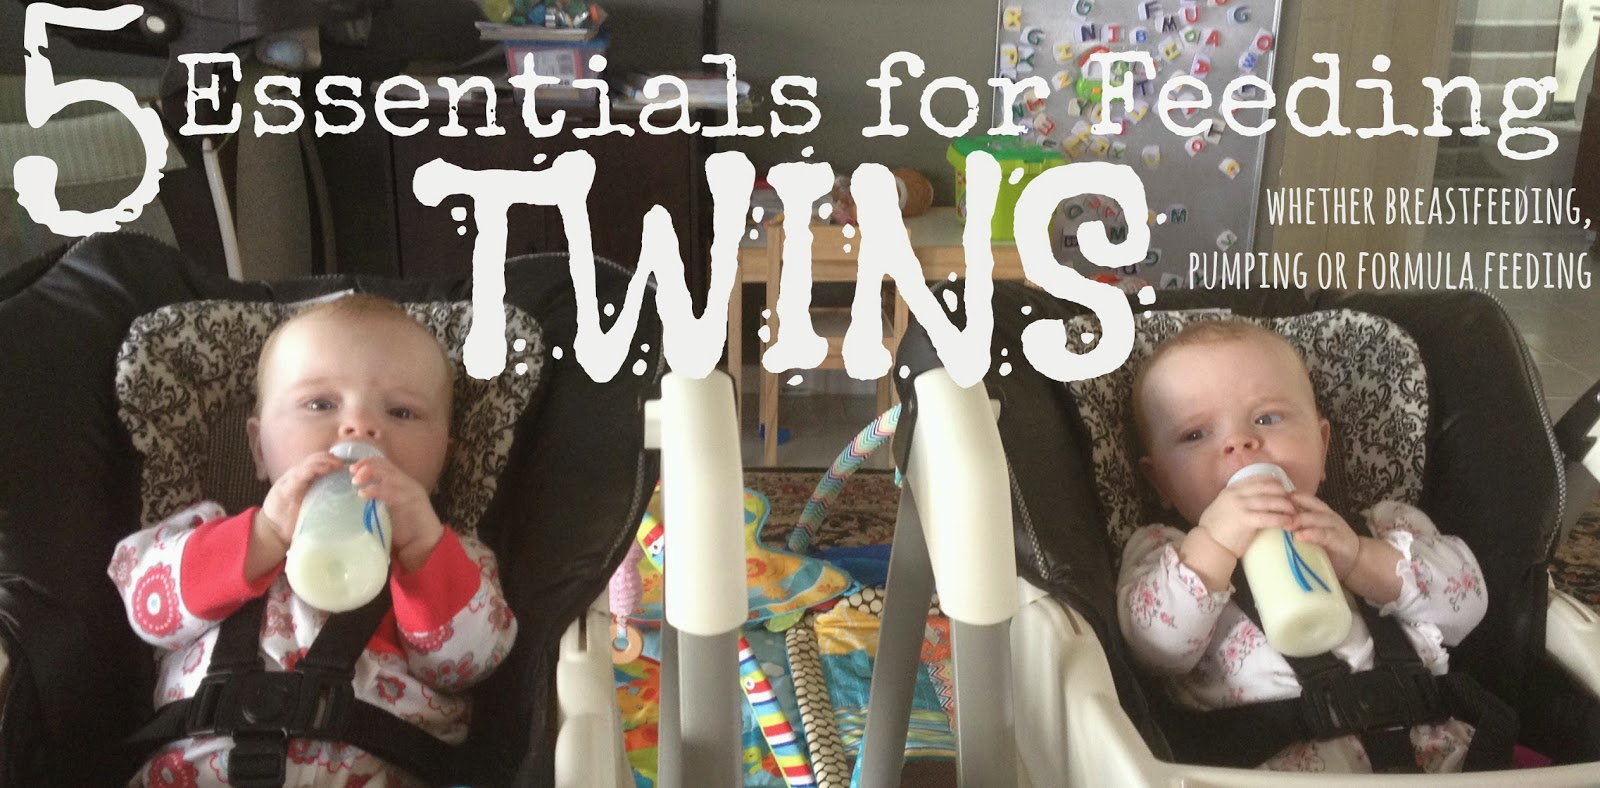 #GIVEAWAY 5 Essentials for Feeding Twins... or any baby for that matter... (whether breastfeeding, pumping, or formula feeding)